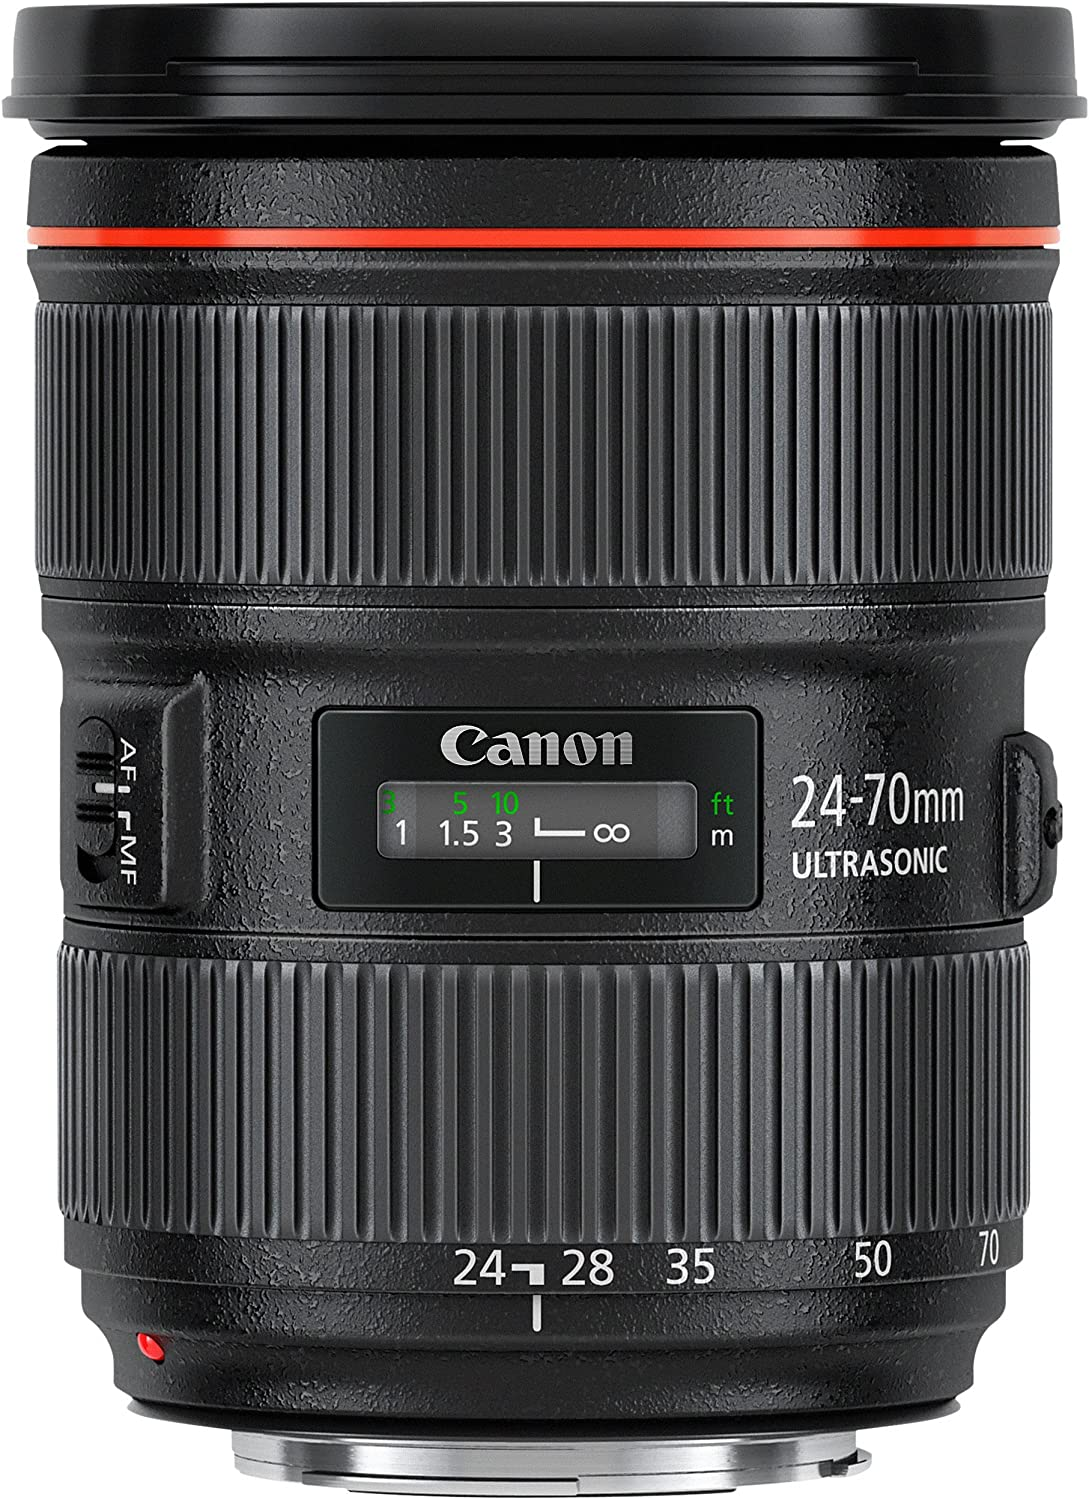 For Canon EF 24-70mm f//2.8L USM Lens Sleeve Filter Brand Replacement Parts